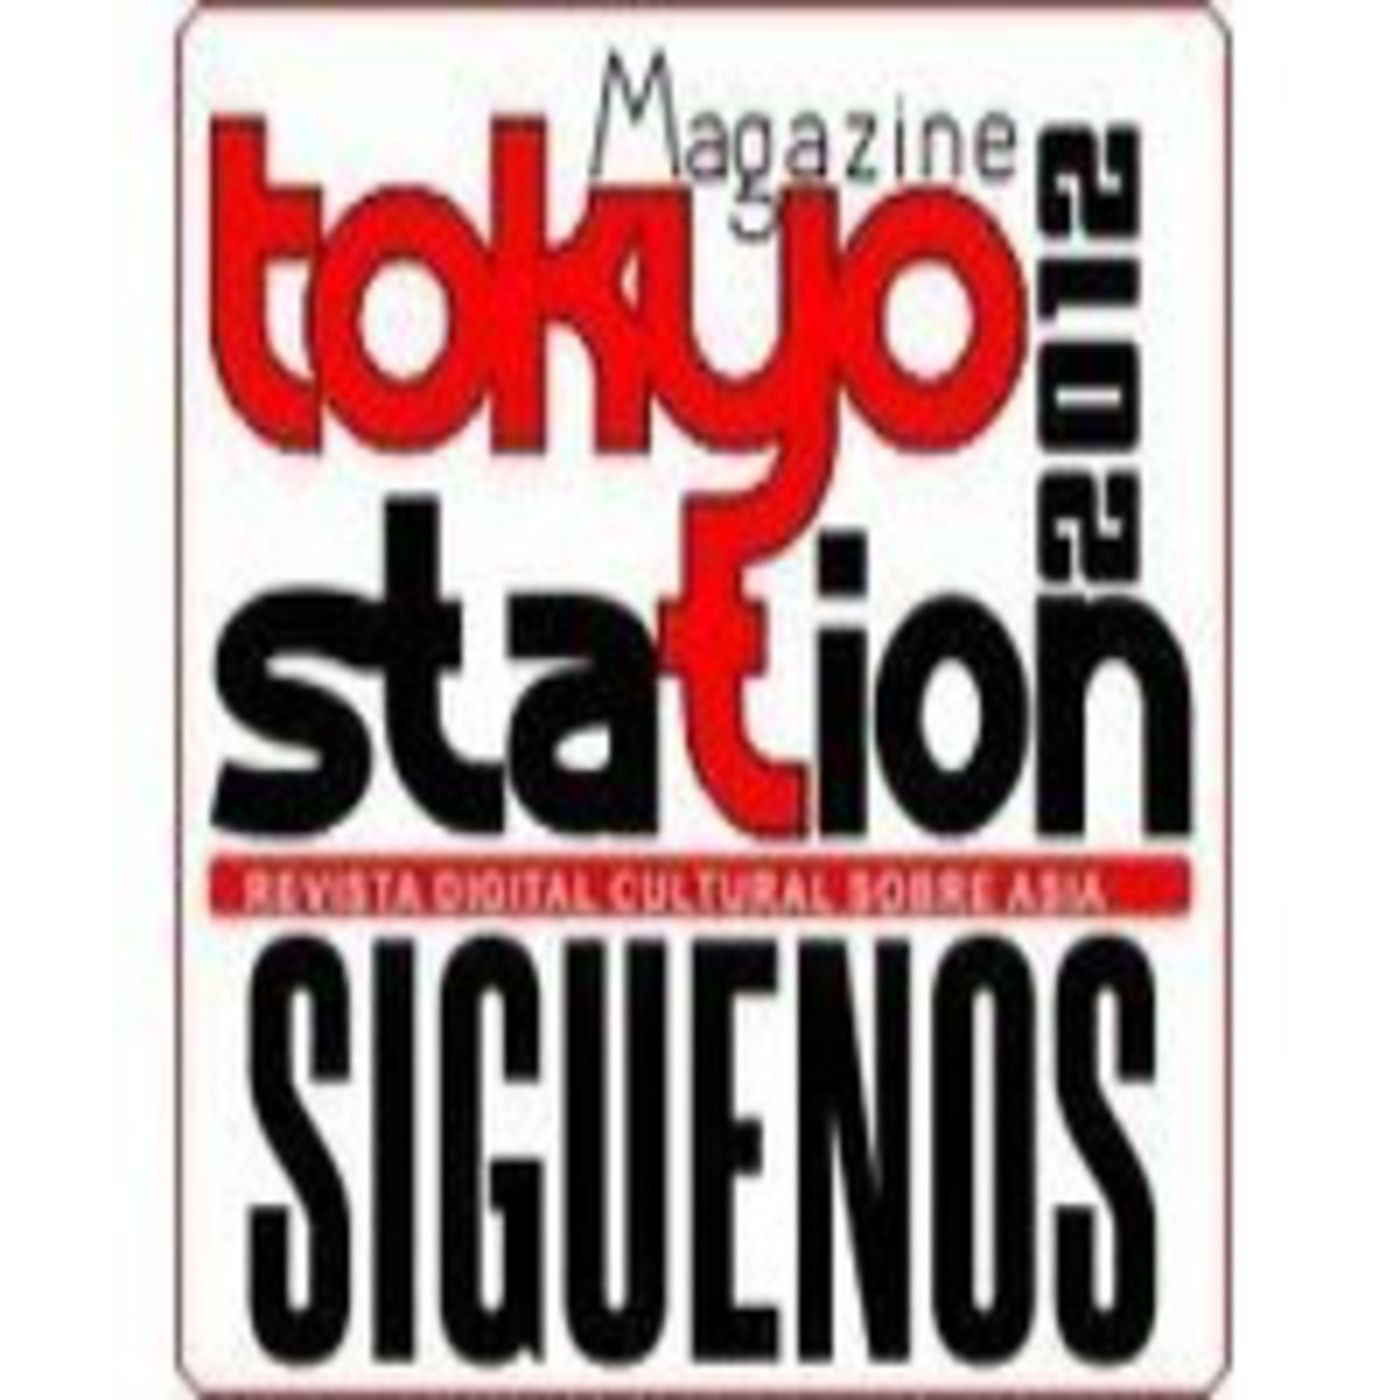 Podcast Tokyo Station 00 - Abril 2013 [PILOTO]